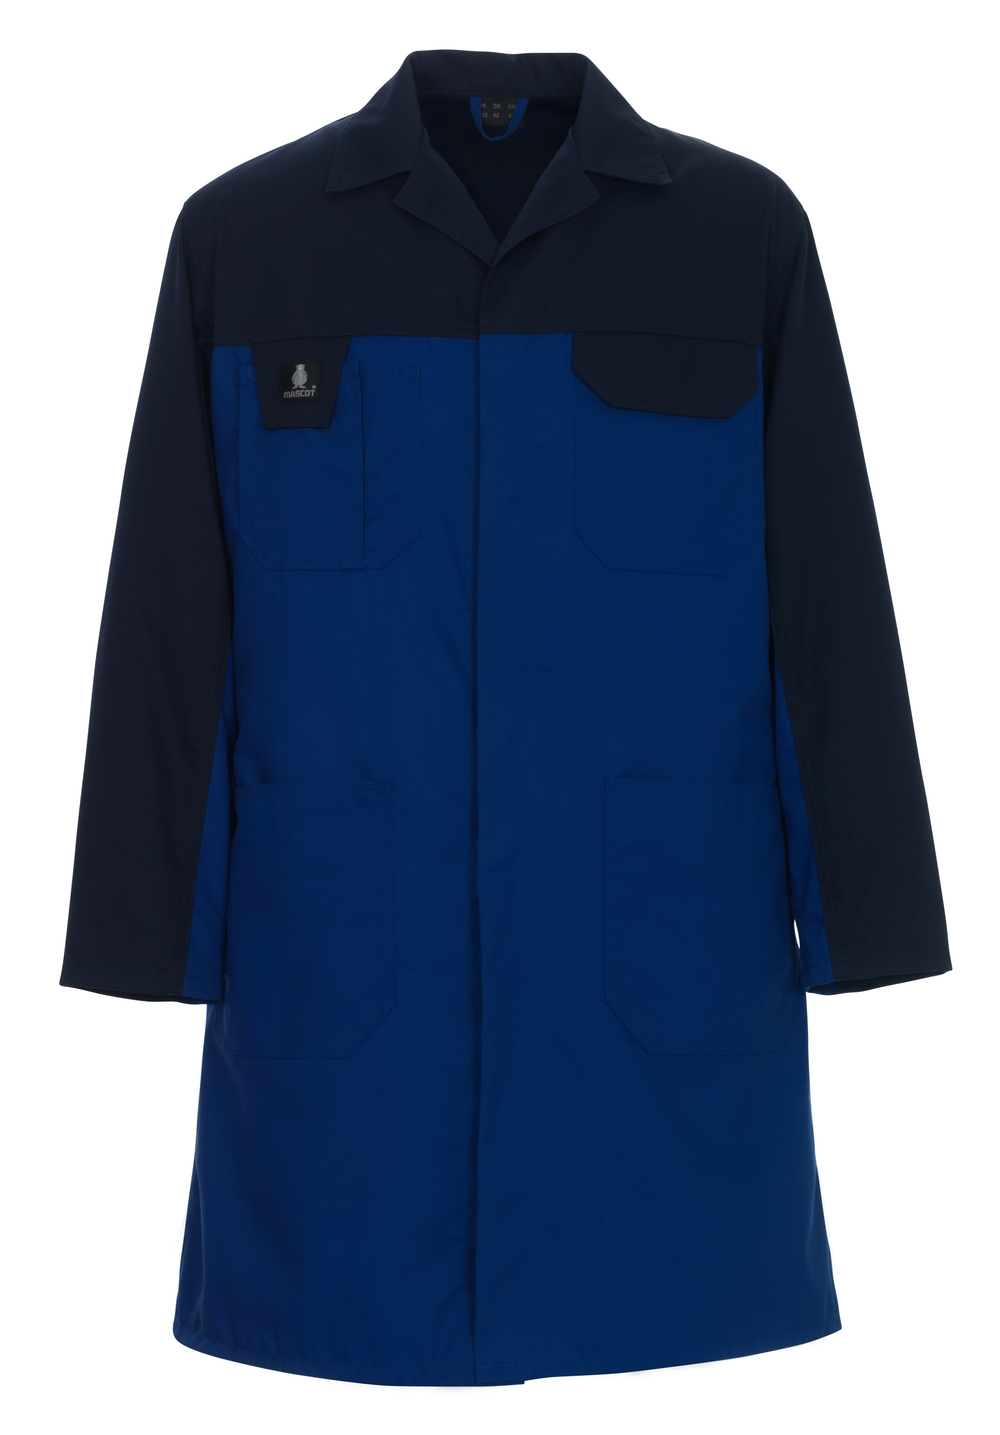 PARMA WAREHOUSE COAT